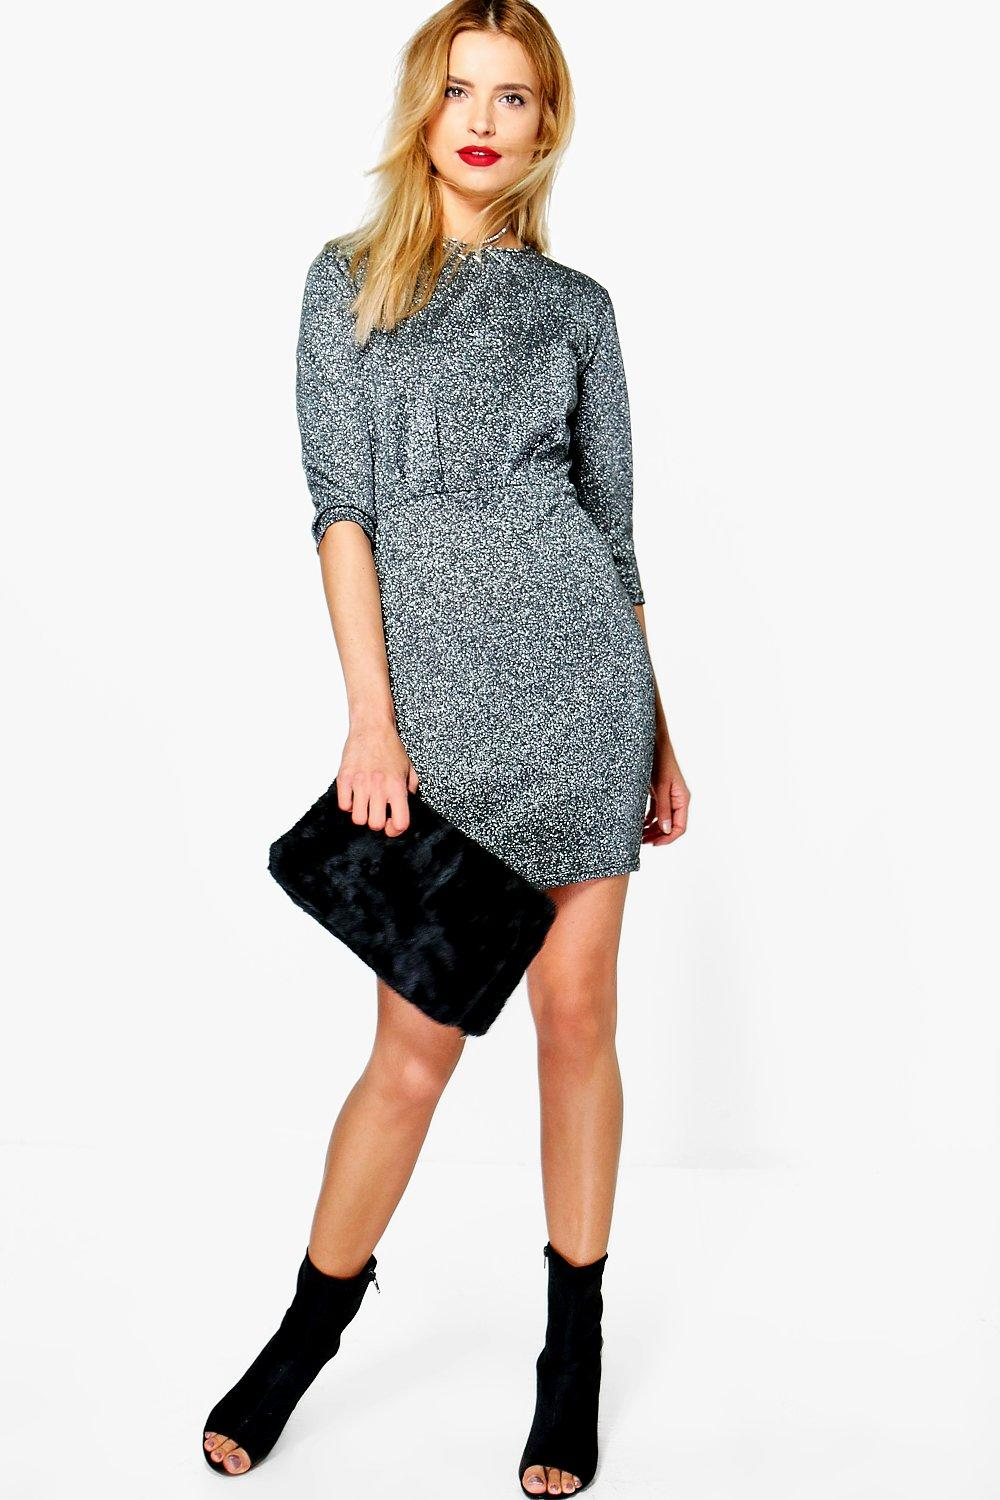 Lani Metallic 3/4 Sleeve Bodycon Dress